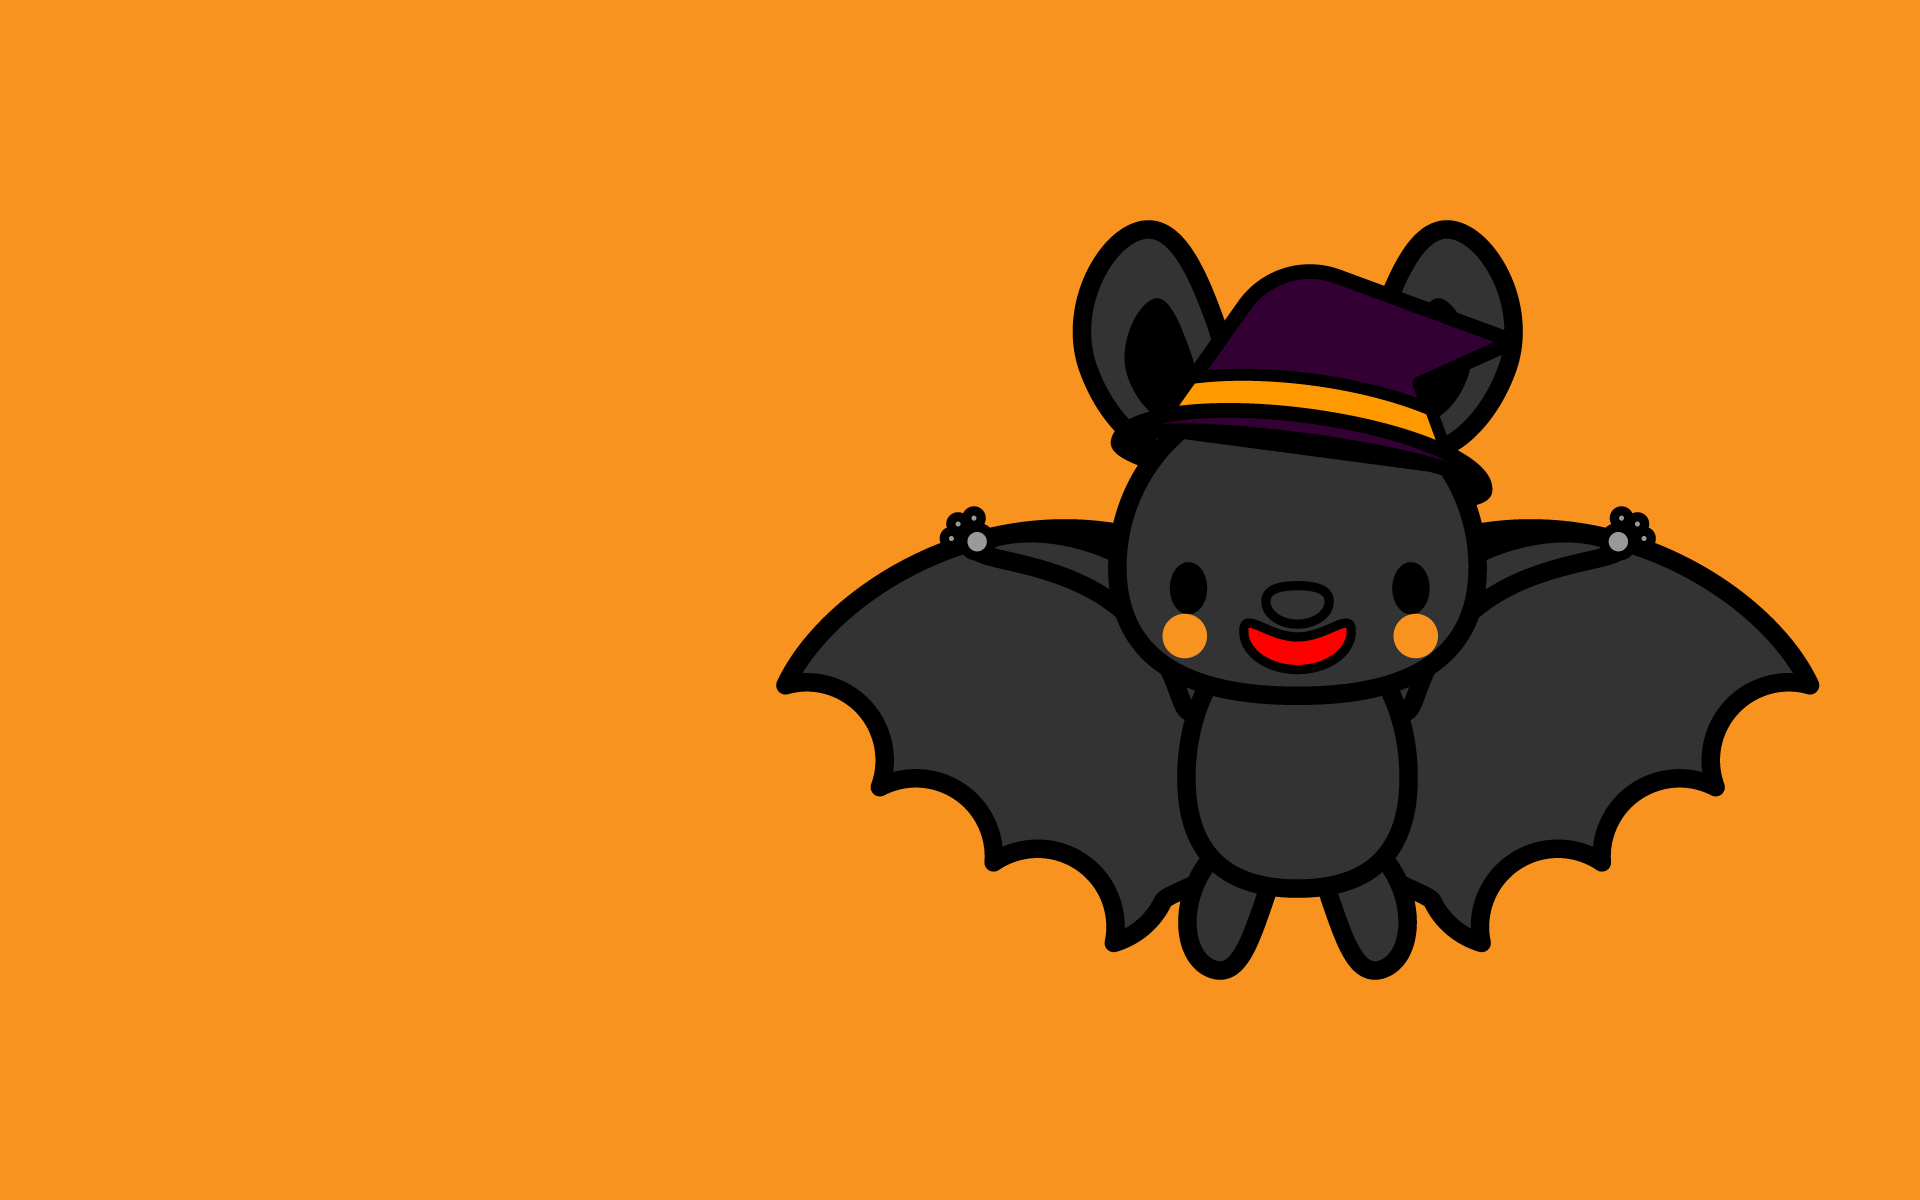 wallpaper2_halloween-bat01-orange-pc